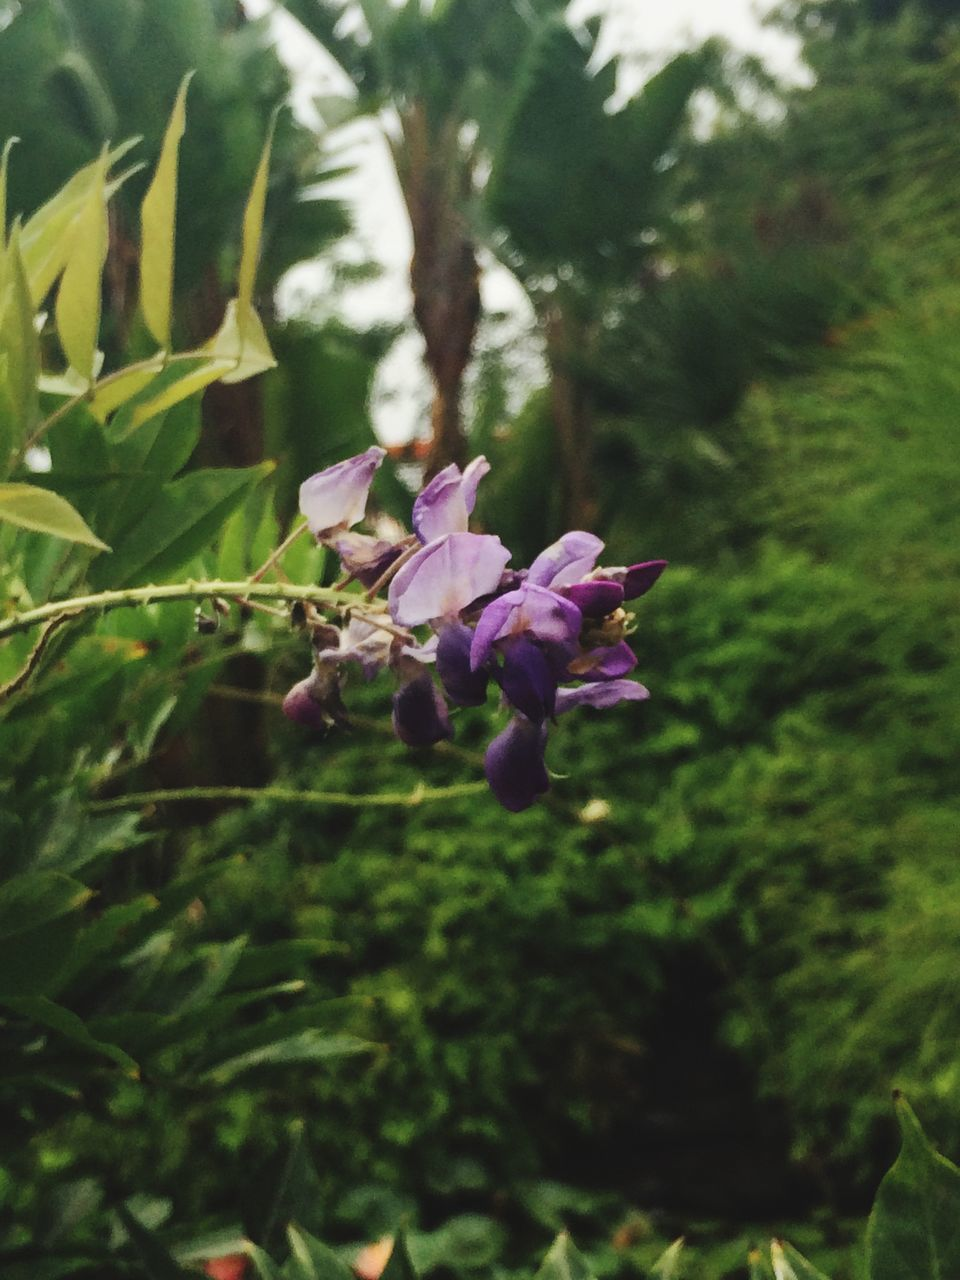 flower, growth, nature, fragility, plant, petal, beauty in nature, no people, day, freshness, outdoors, blooming, close-up, flower head